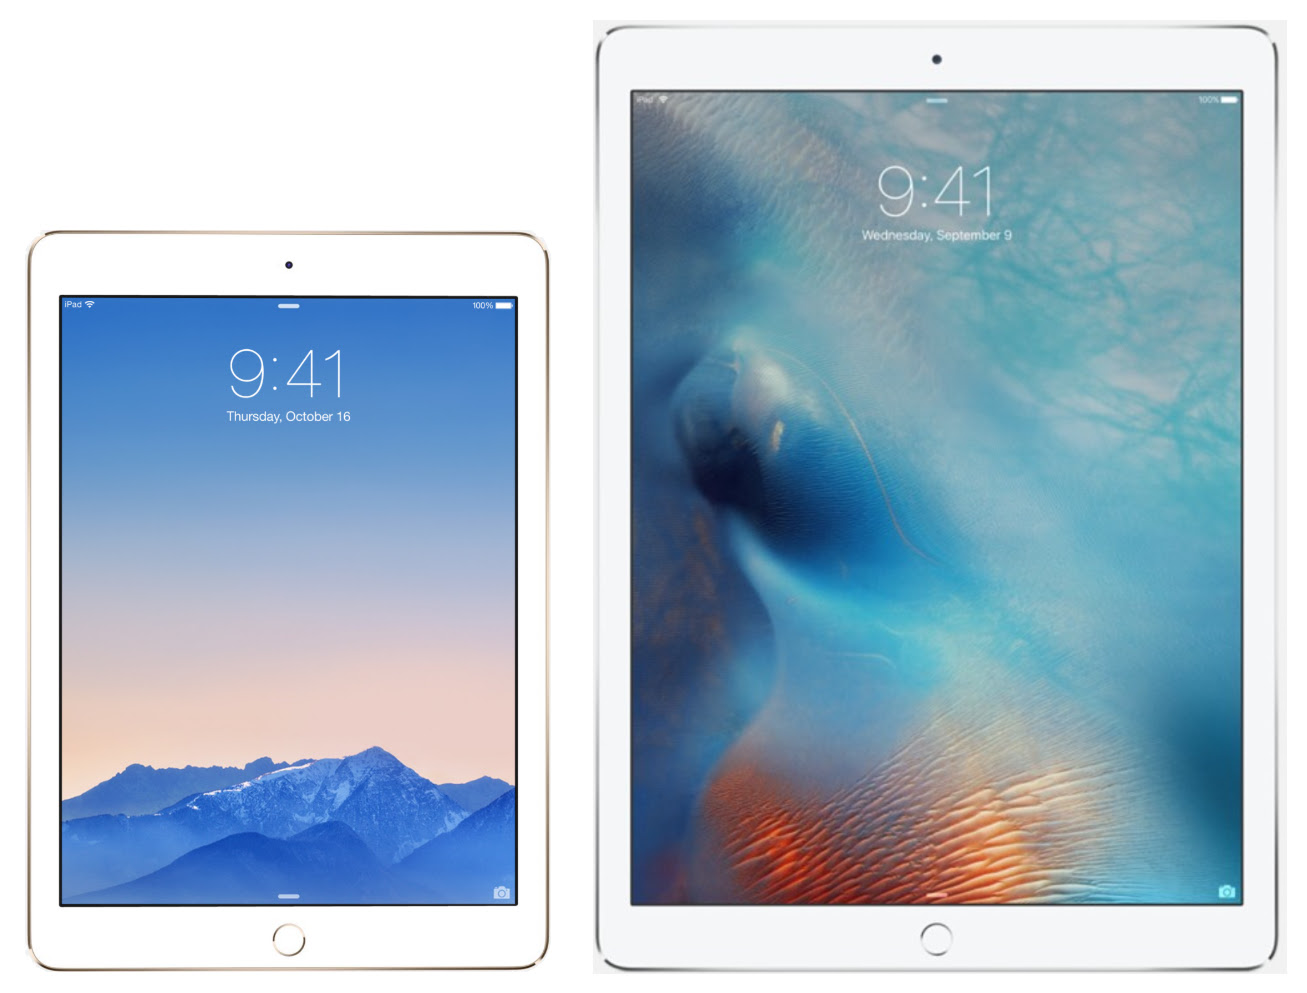 Apple iPad Air 2 and iPad Pro